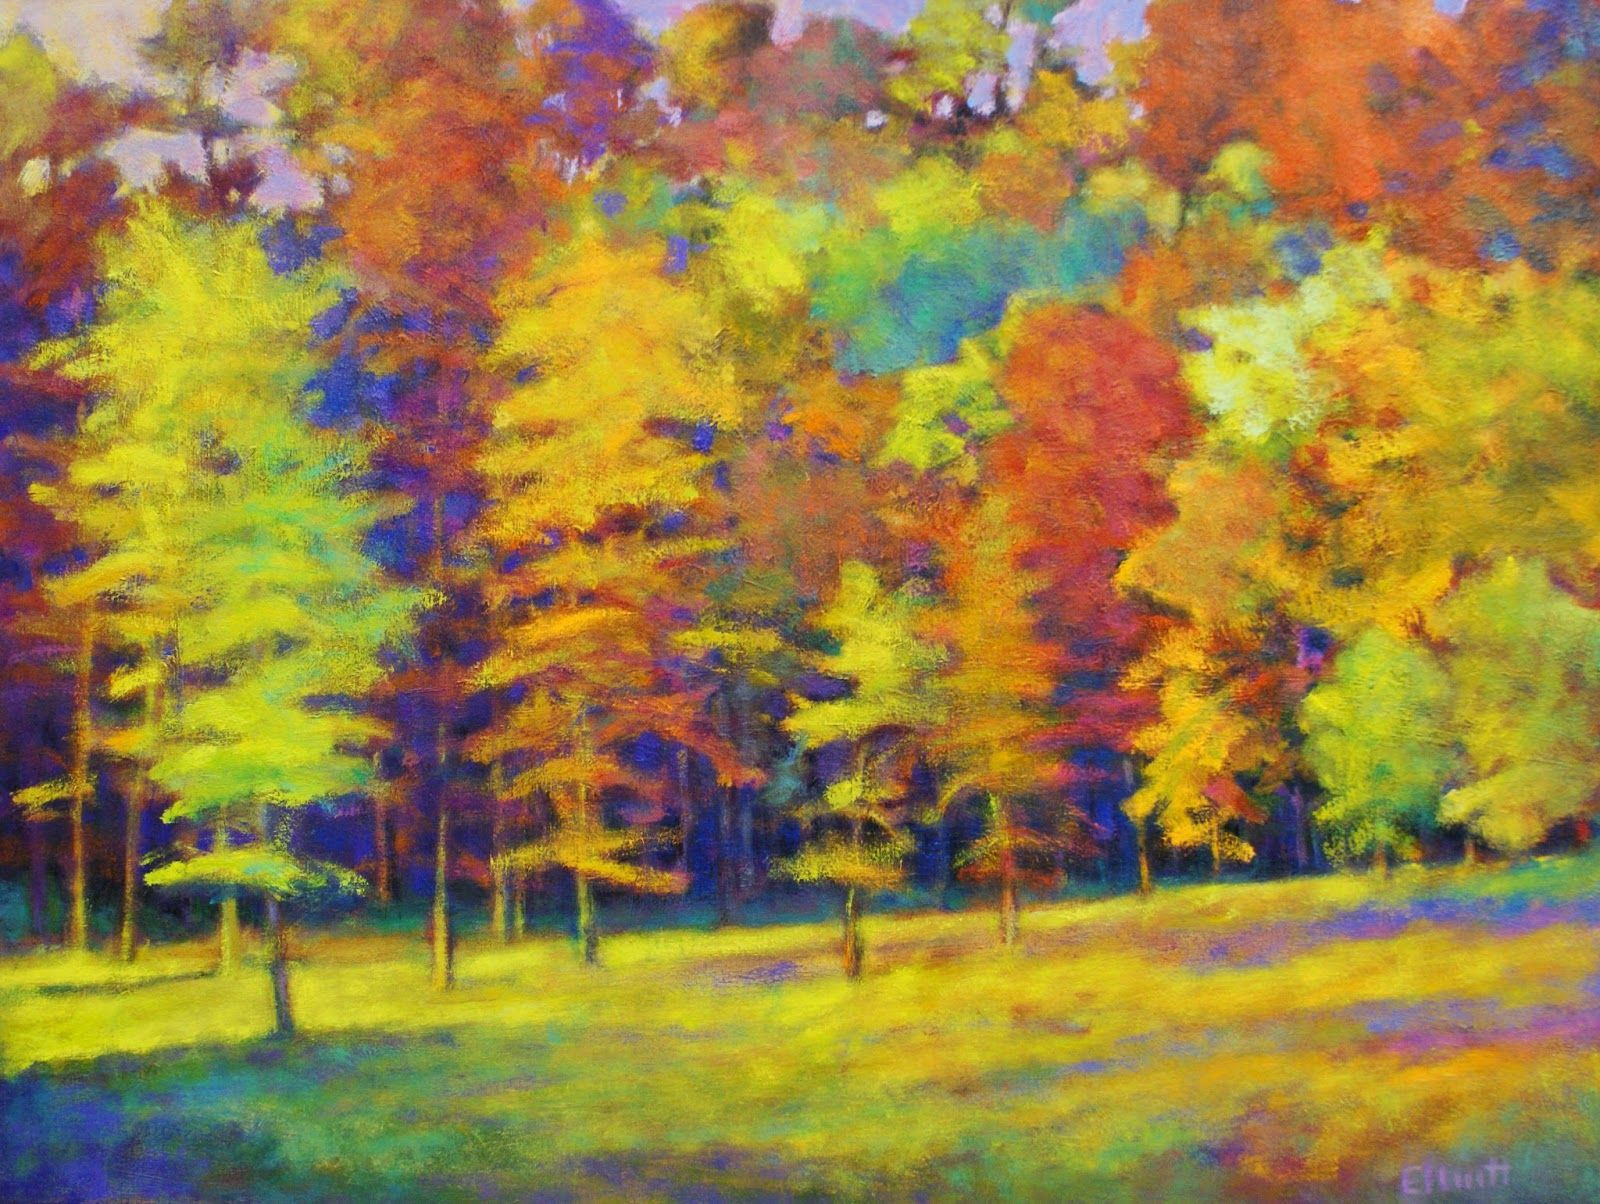 Ken elliott for the color new work fall arrayed oil on canvas 30 x 40